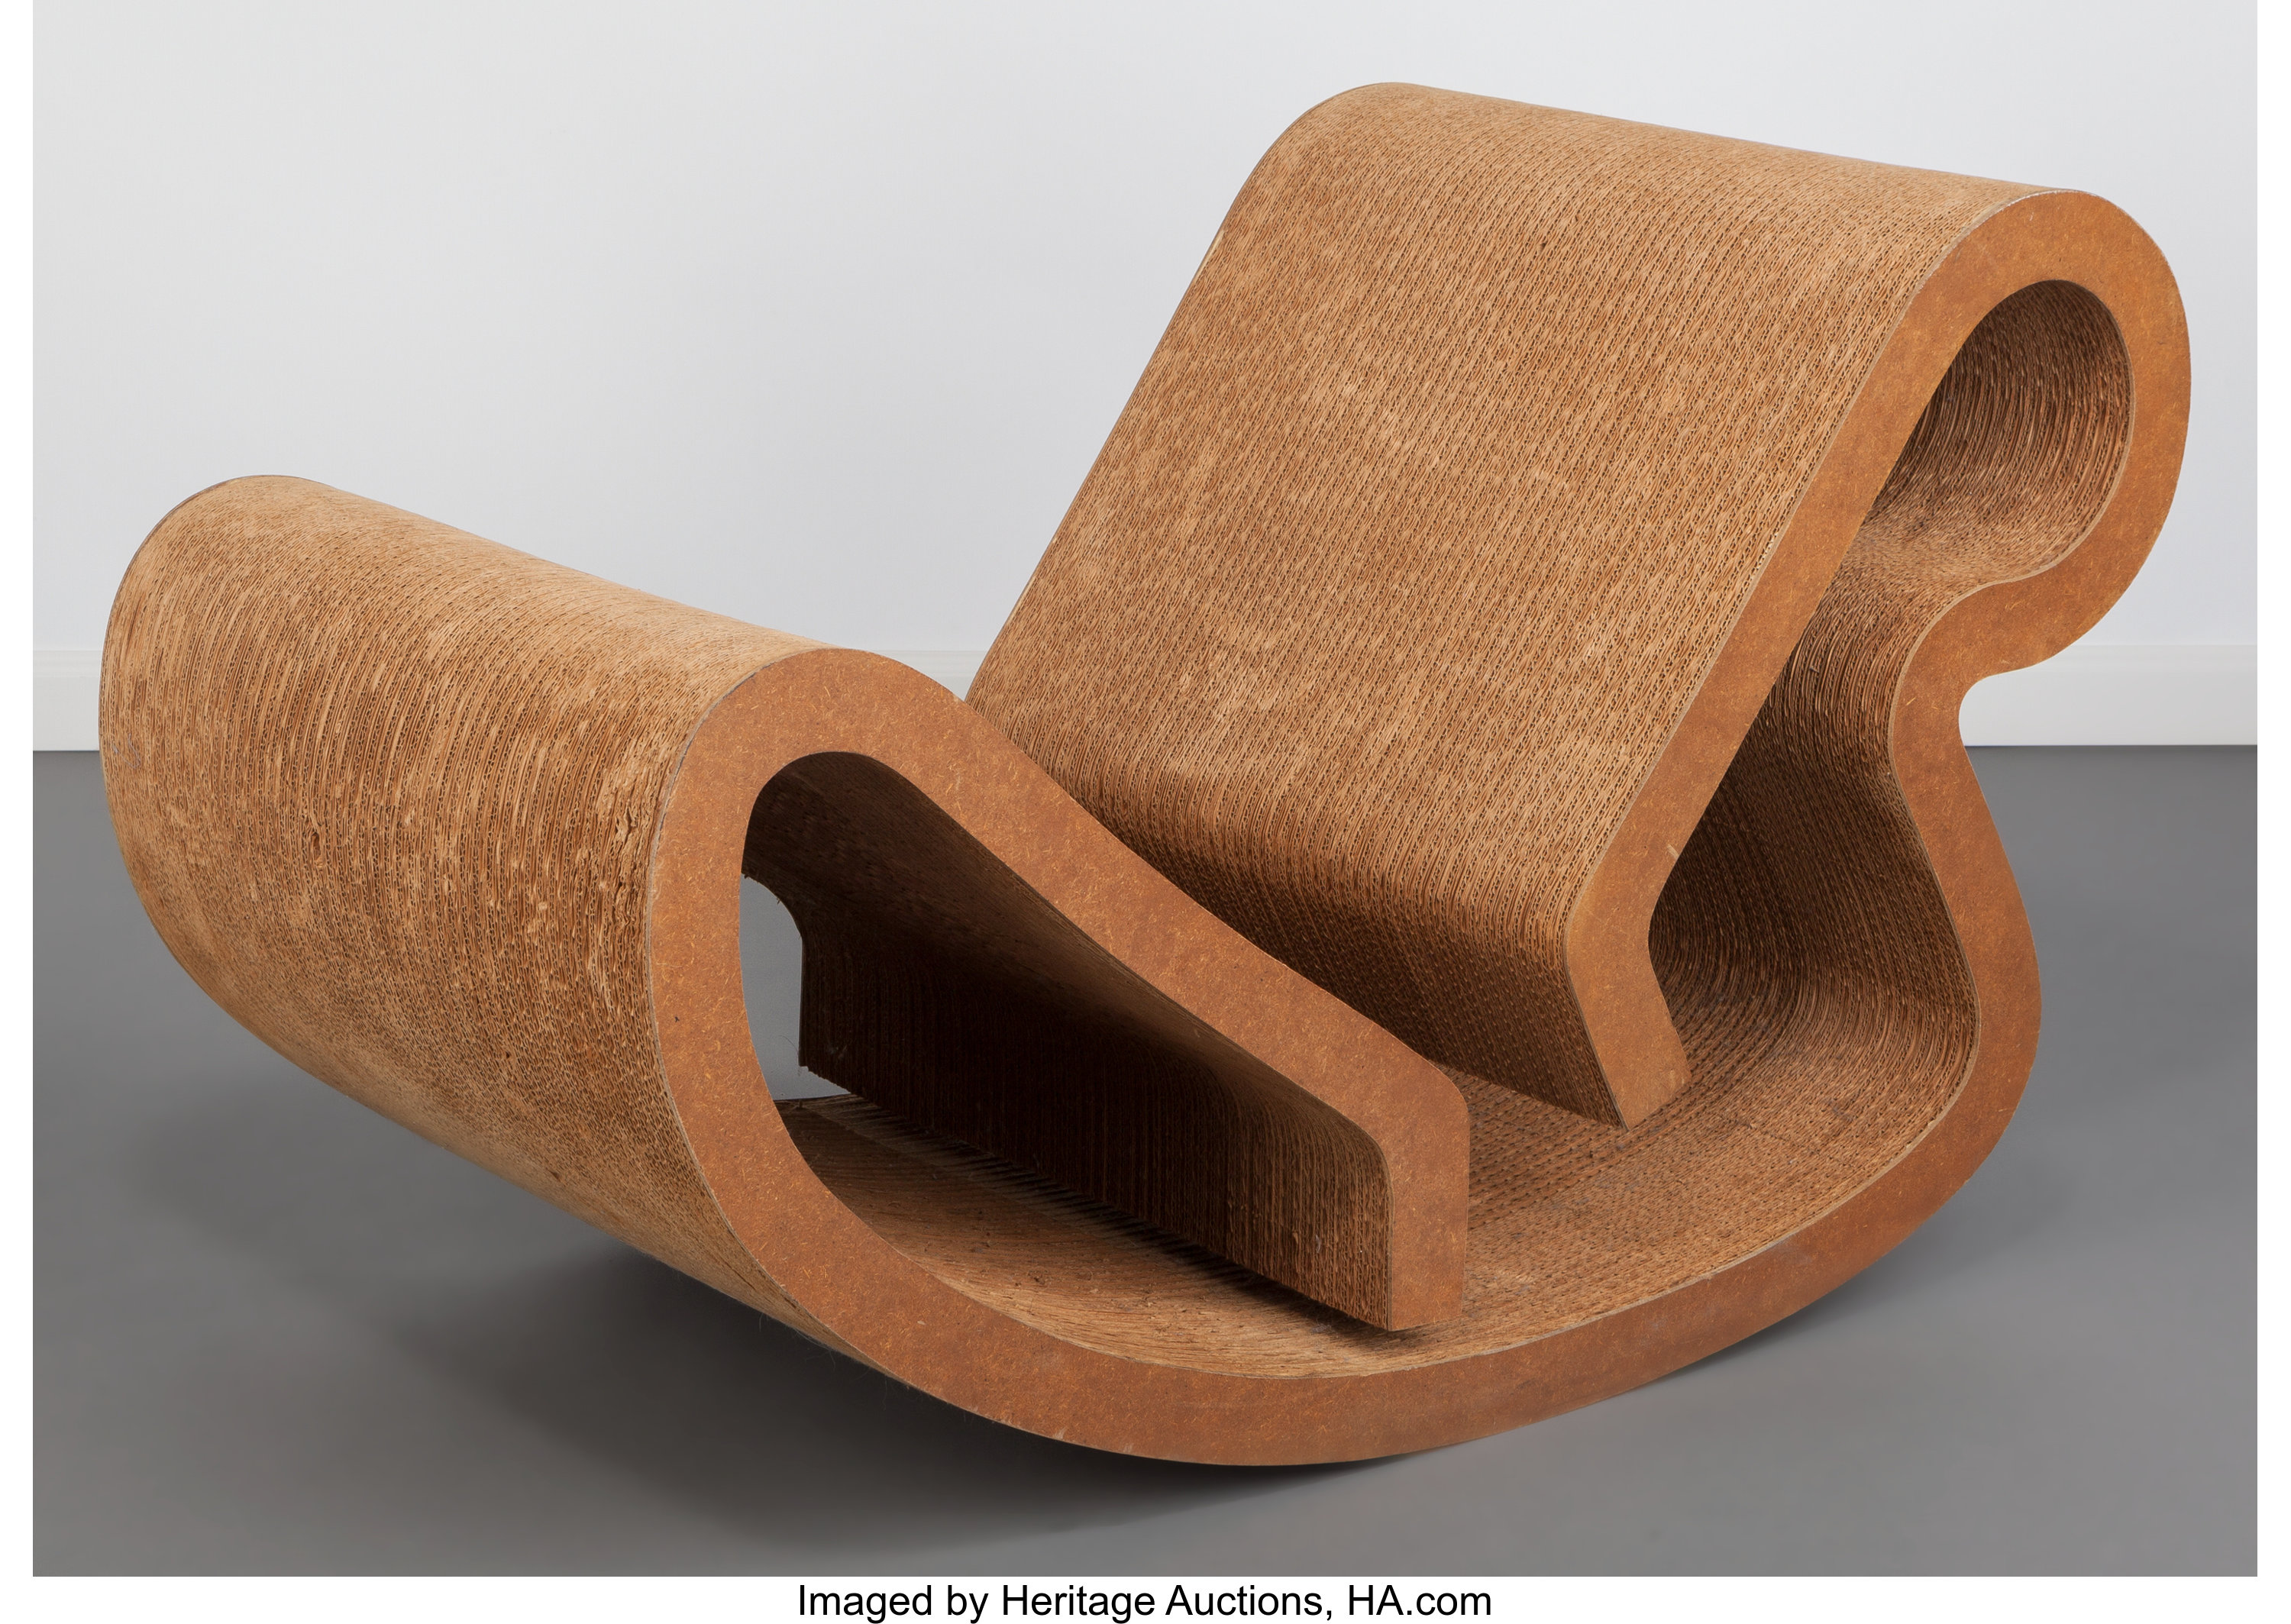 Frank Gehry Chaise Carton frank gehry (canadian/american, b. 1929). rocking chaise